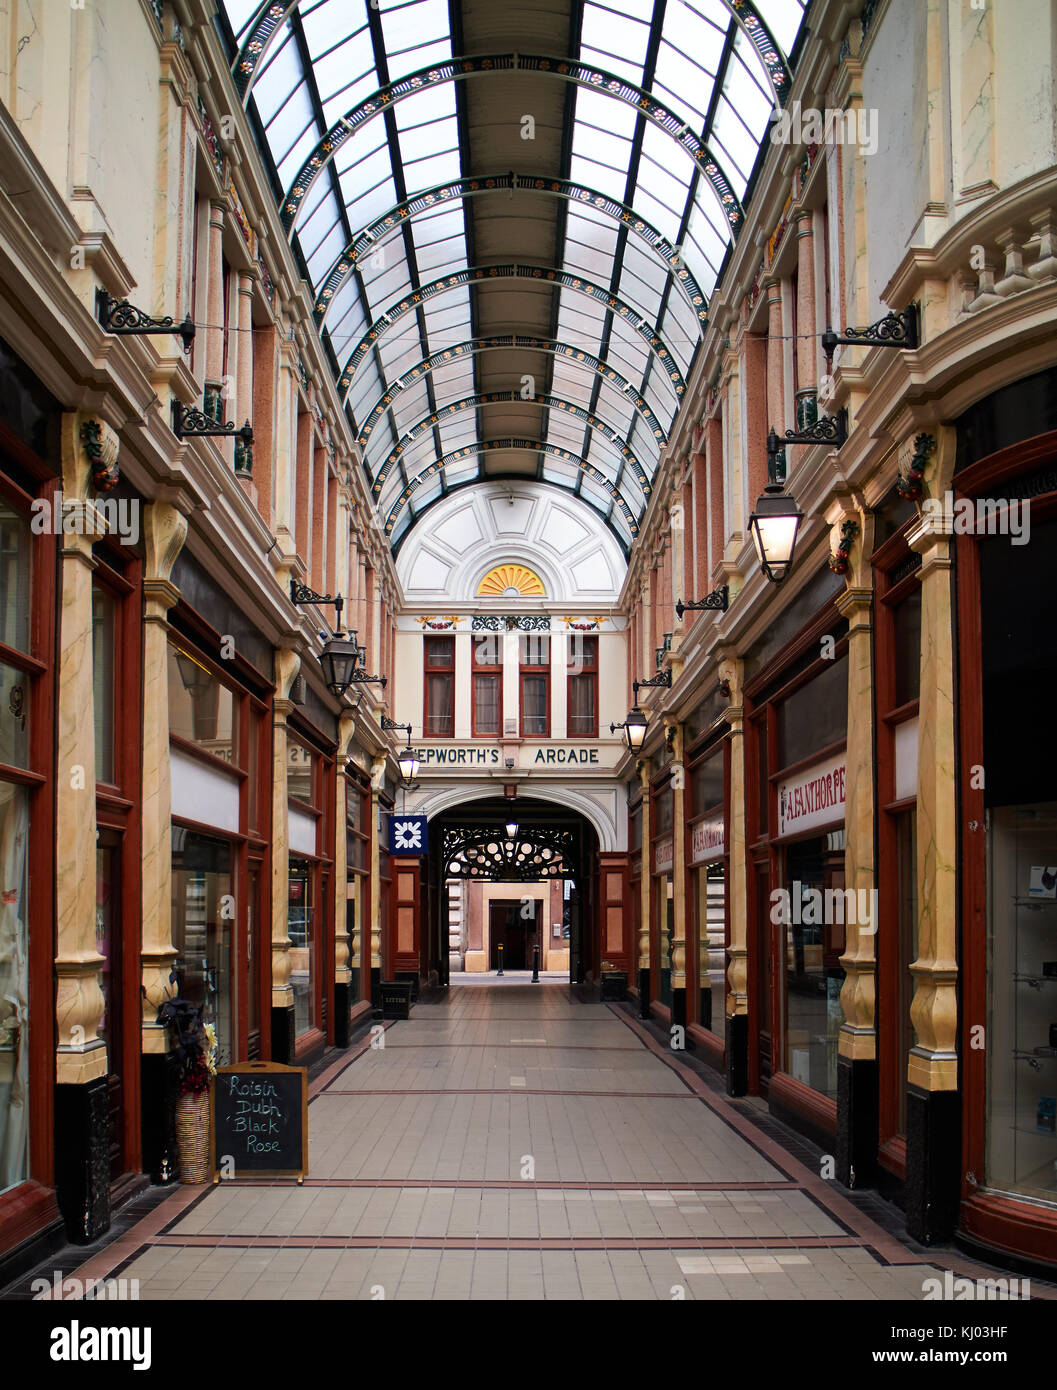 England, East Riding of Yorkshire, Kingston upon Hull city, Hepworth Arcade shops - Stock Image